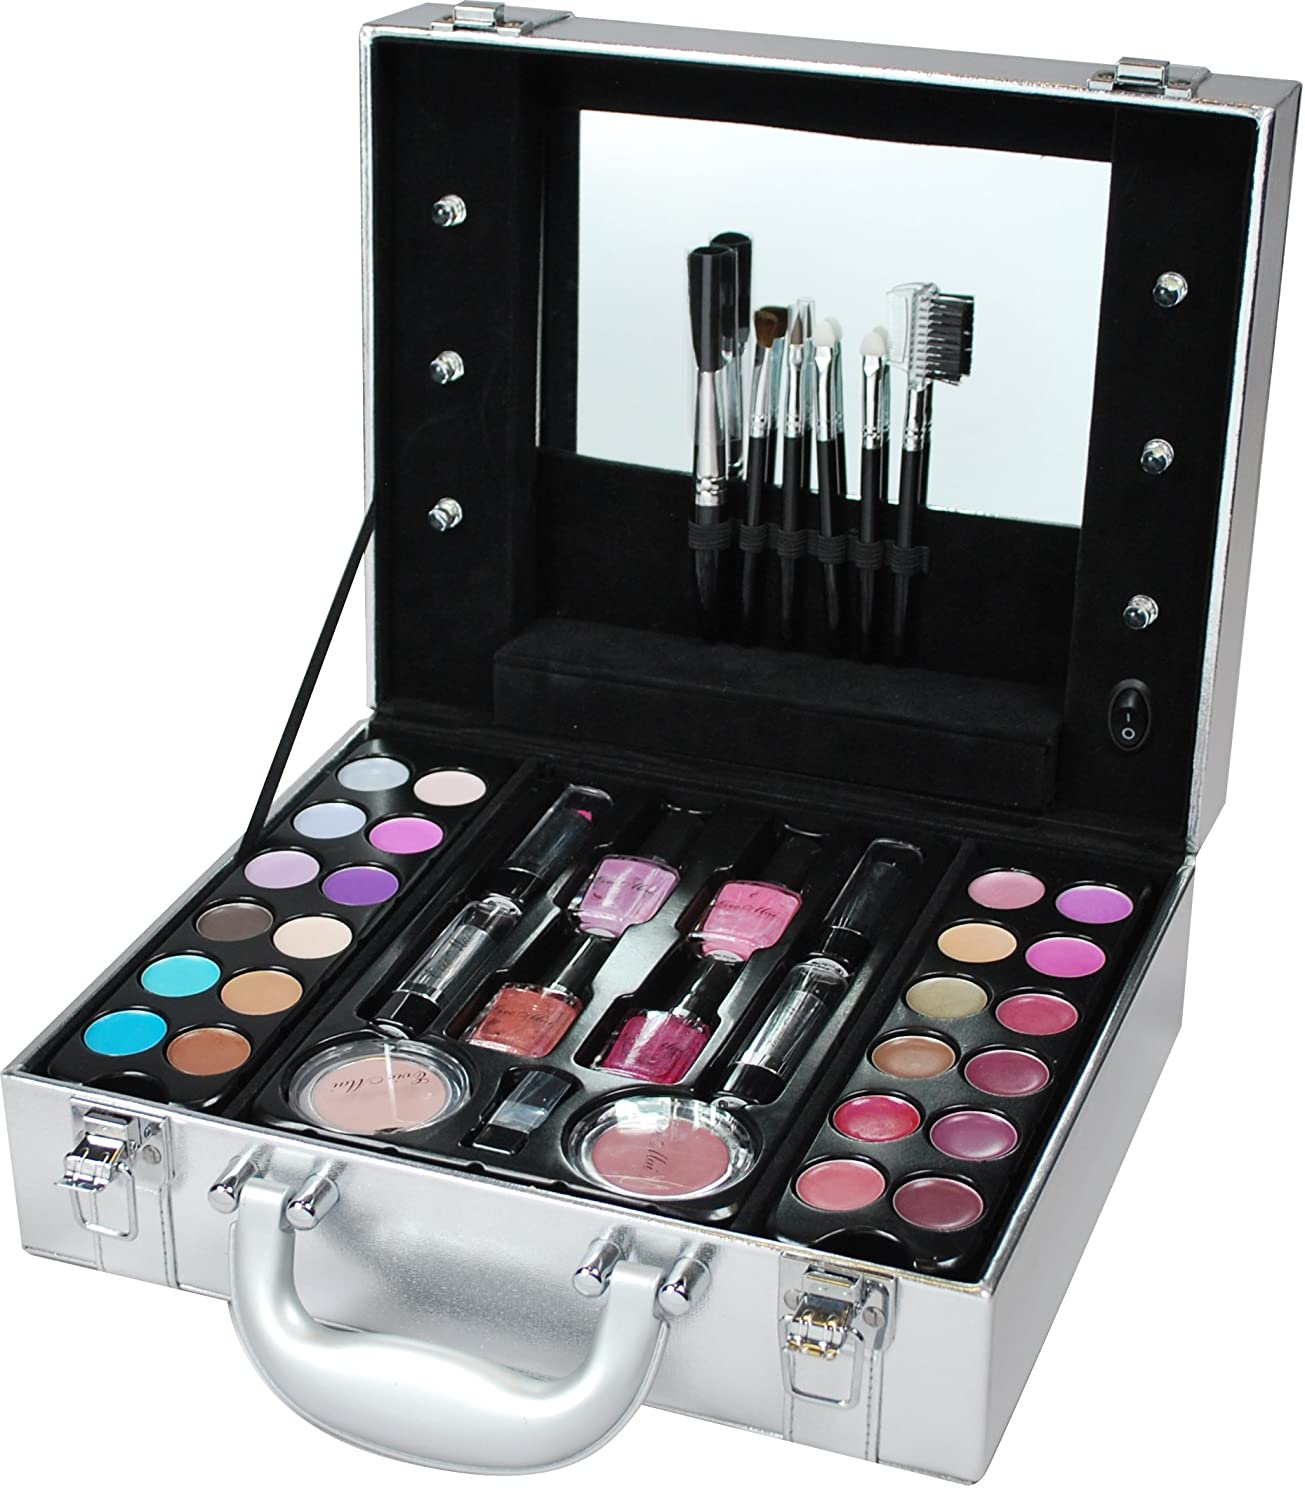 light up vanity set. Evie Mai Light Up Vanity Case With Cosmetics Makeup Set Amazon Co Inspiring Photos  Best idea home design